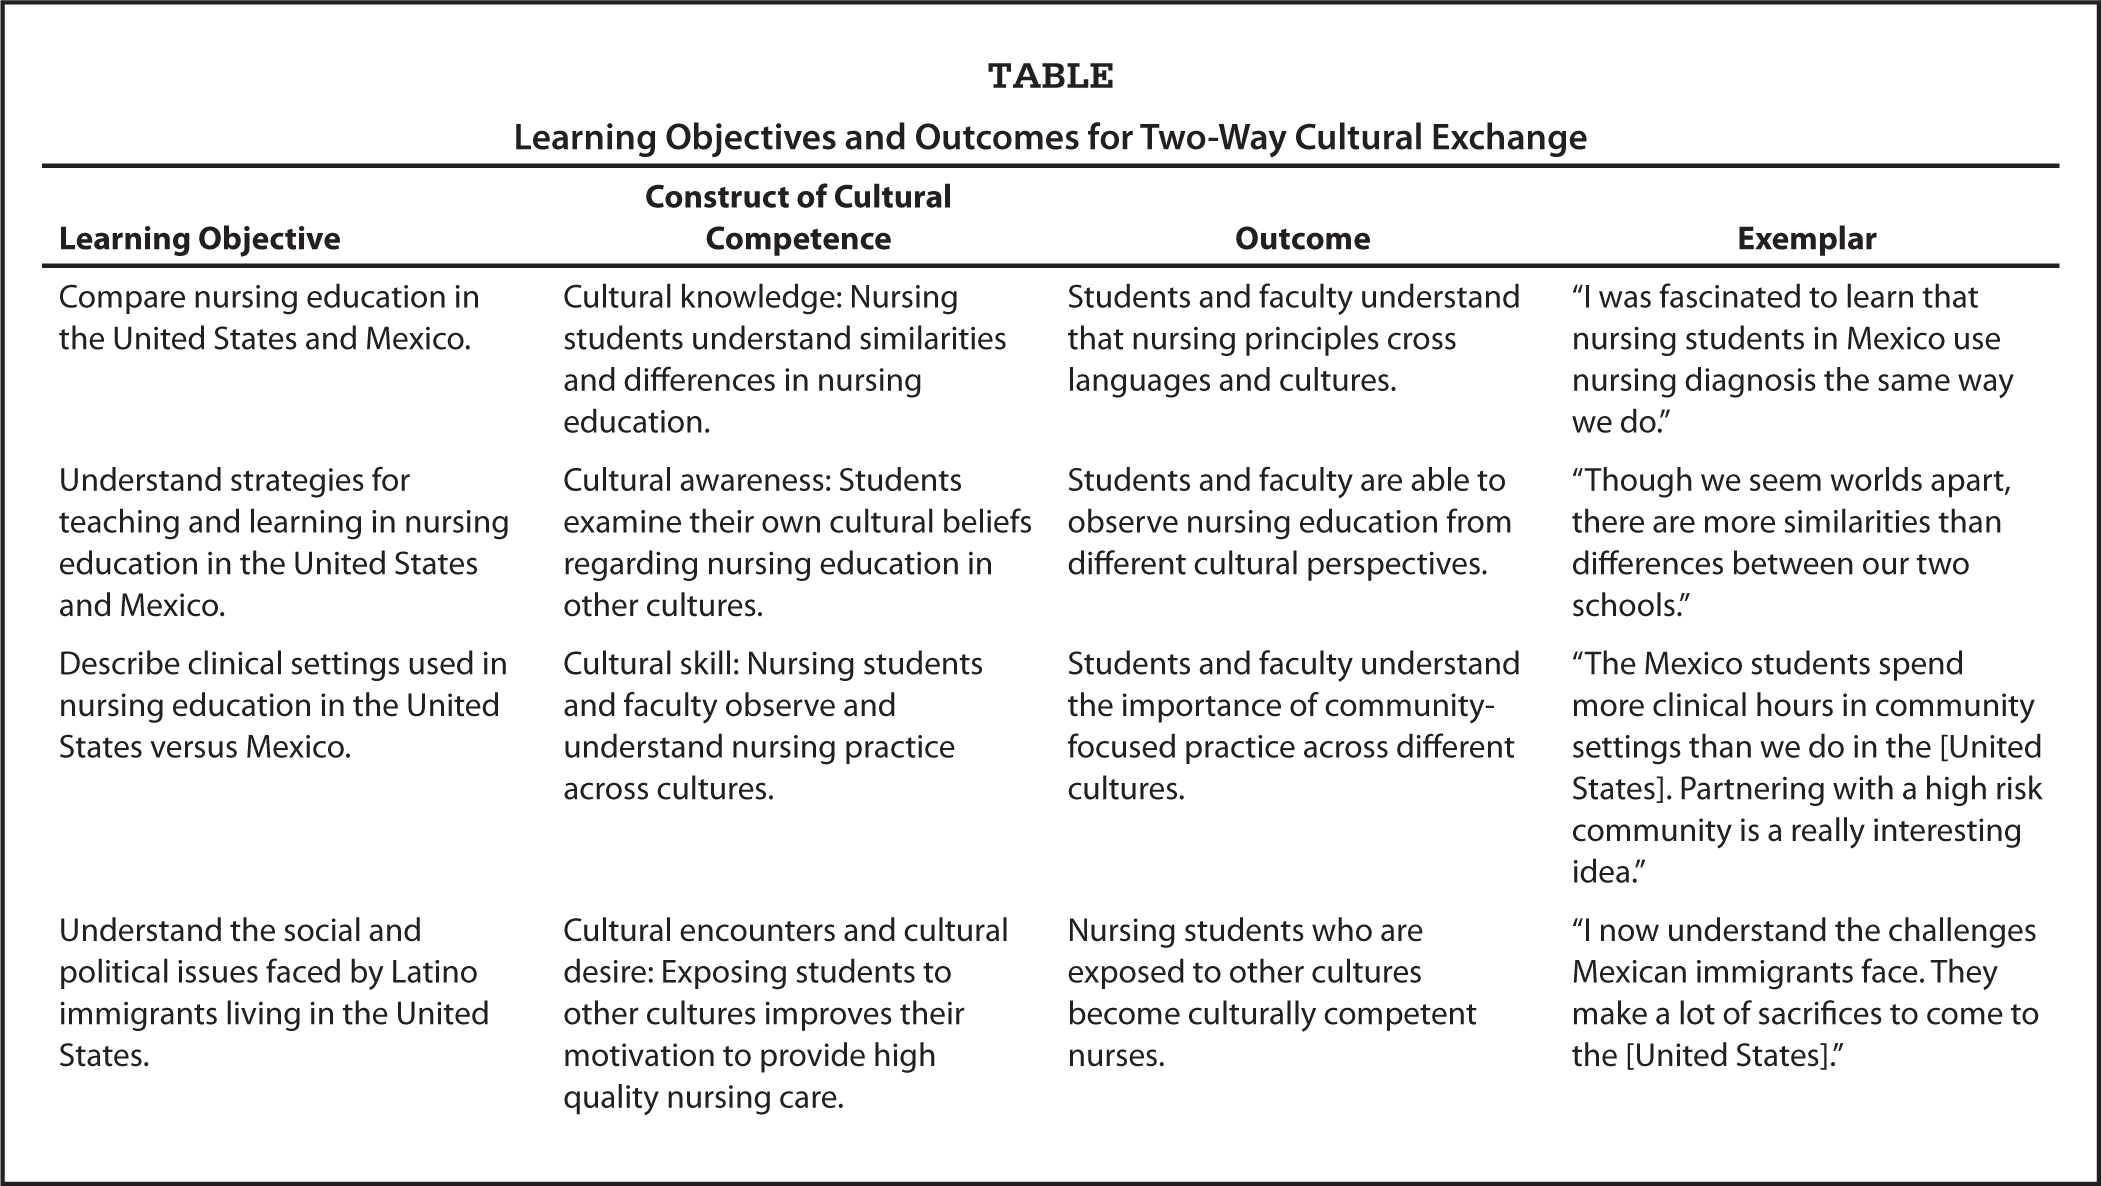 Learning Objectives and Outcomes for Two-Way Cultural Exchange